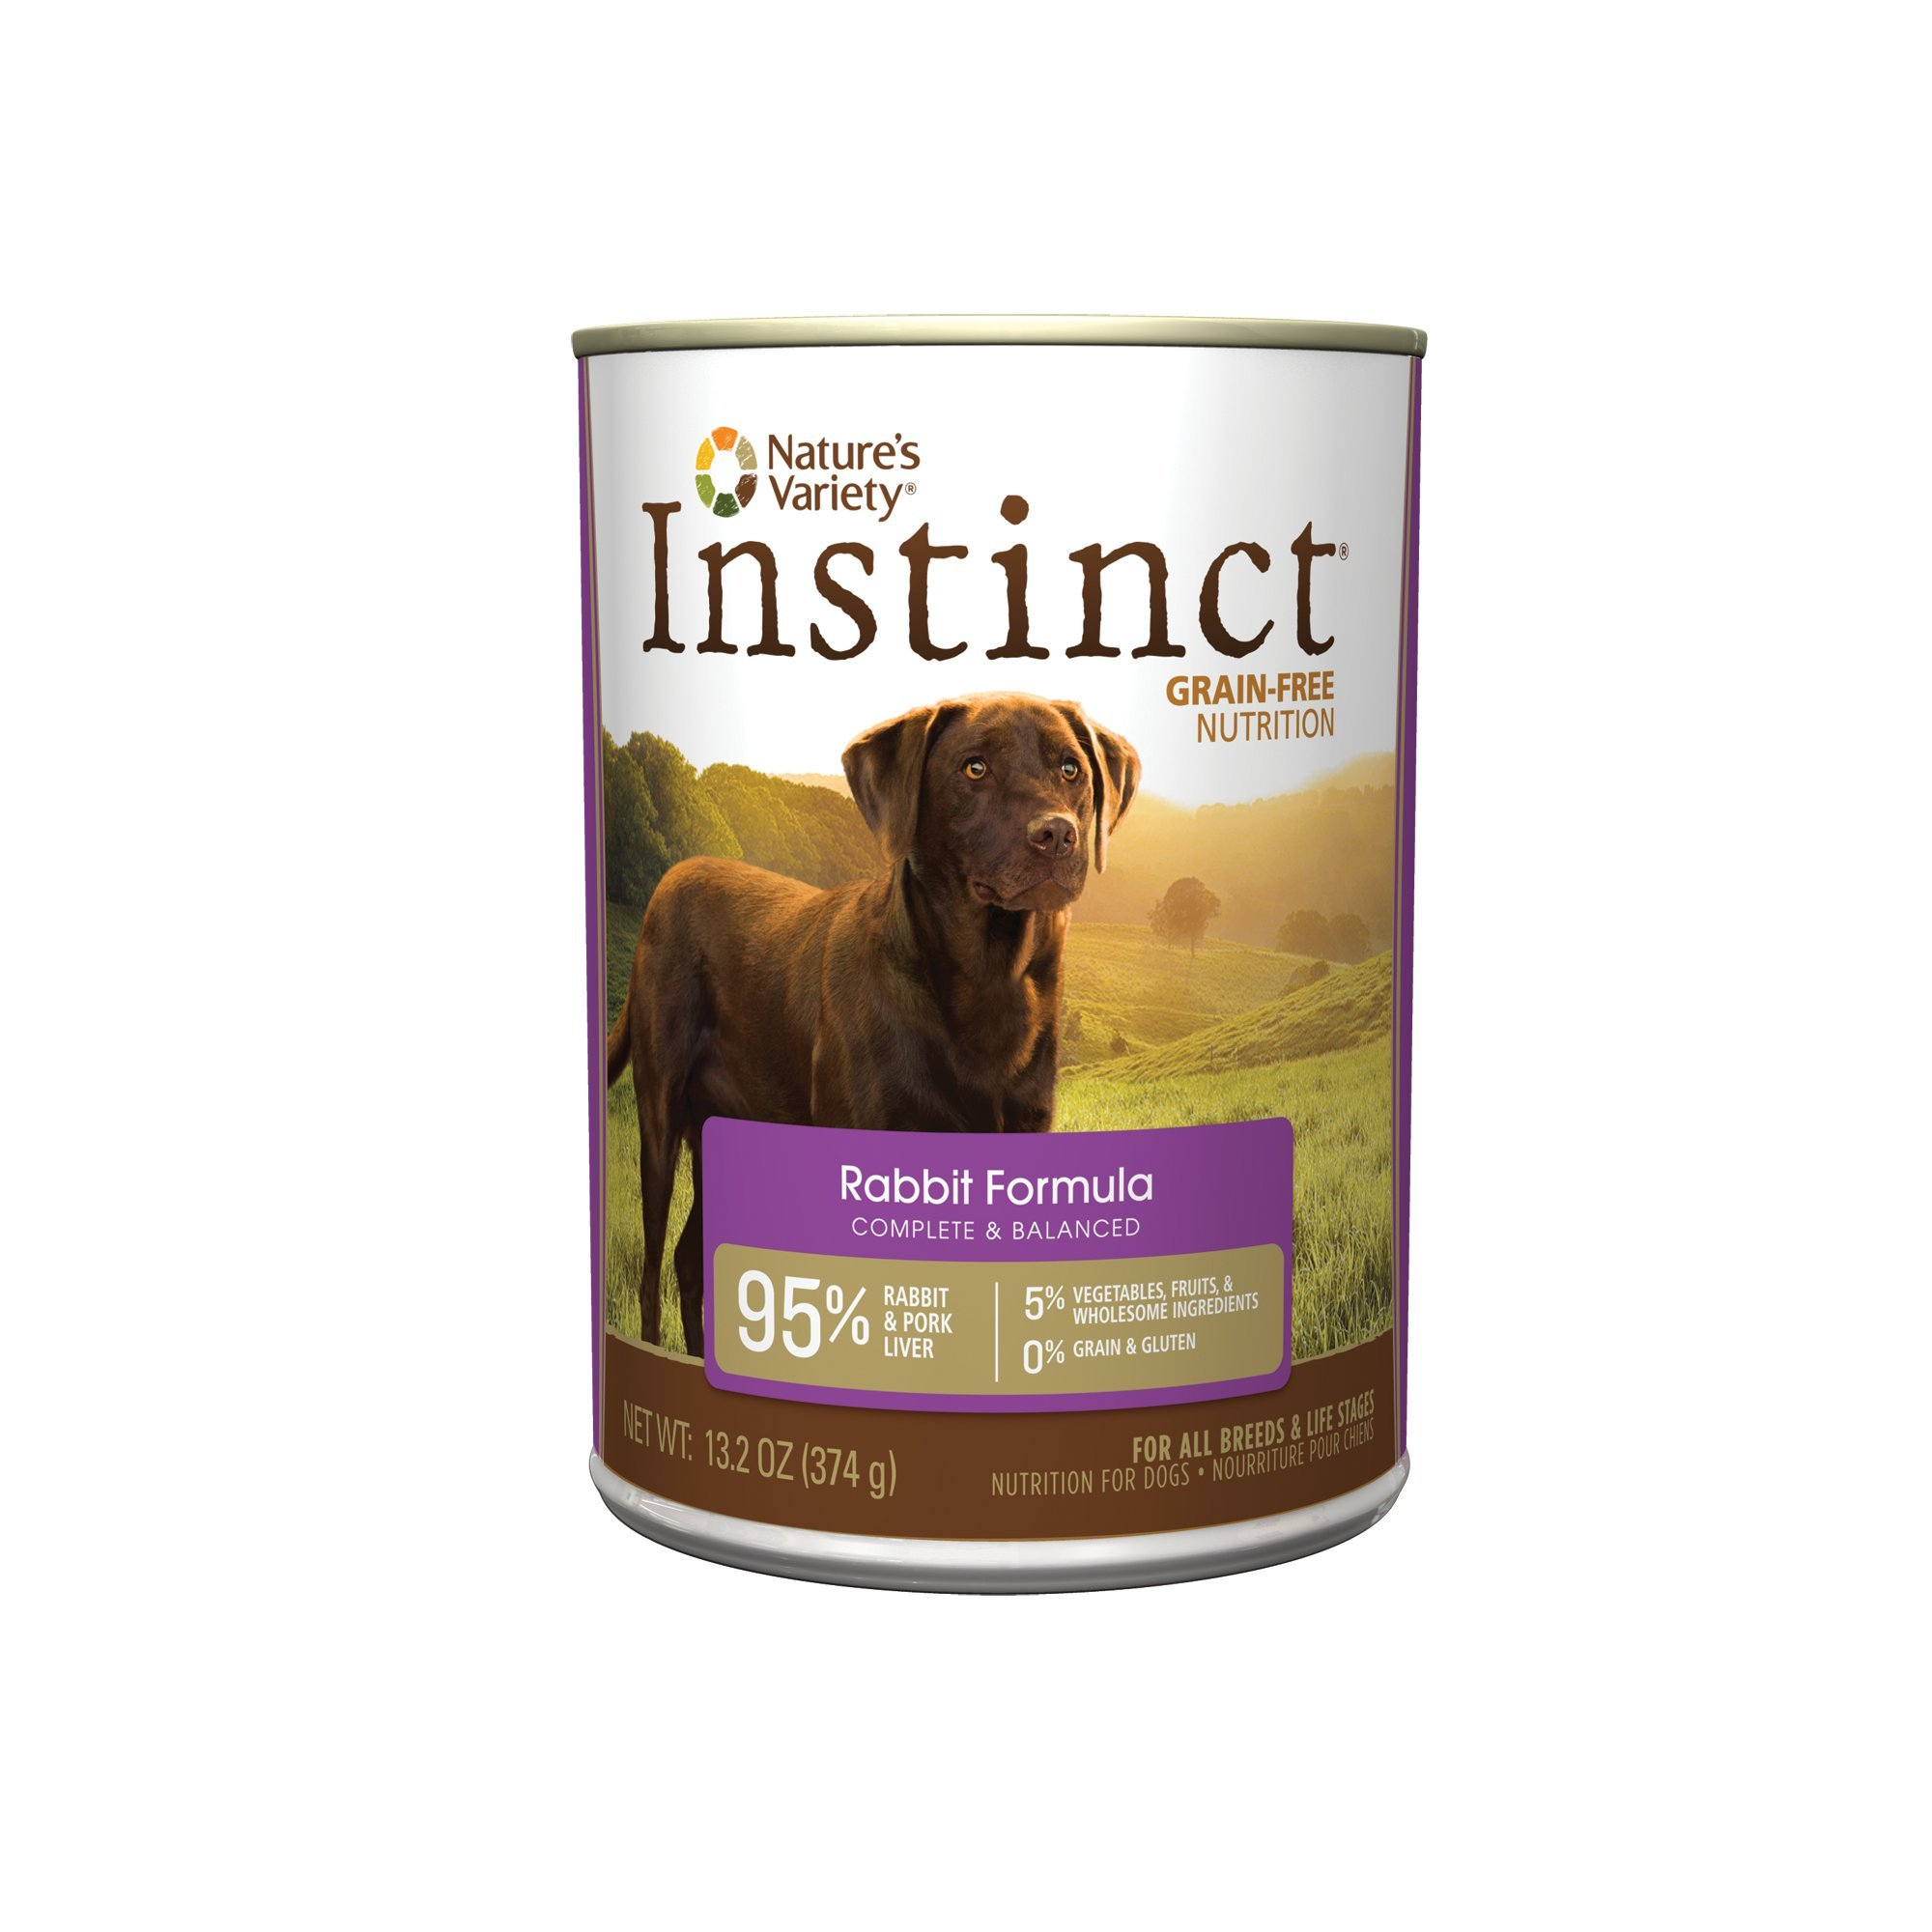 Nature's Variety Instinct Grain-Free Rabbit Canned Dog Food, 13.2 oz., Case of 12